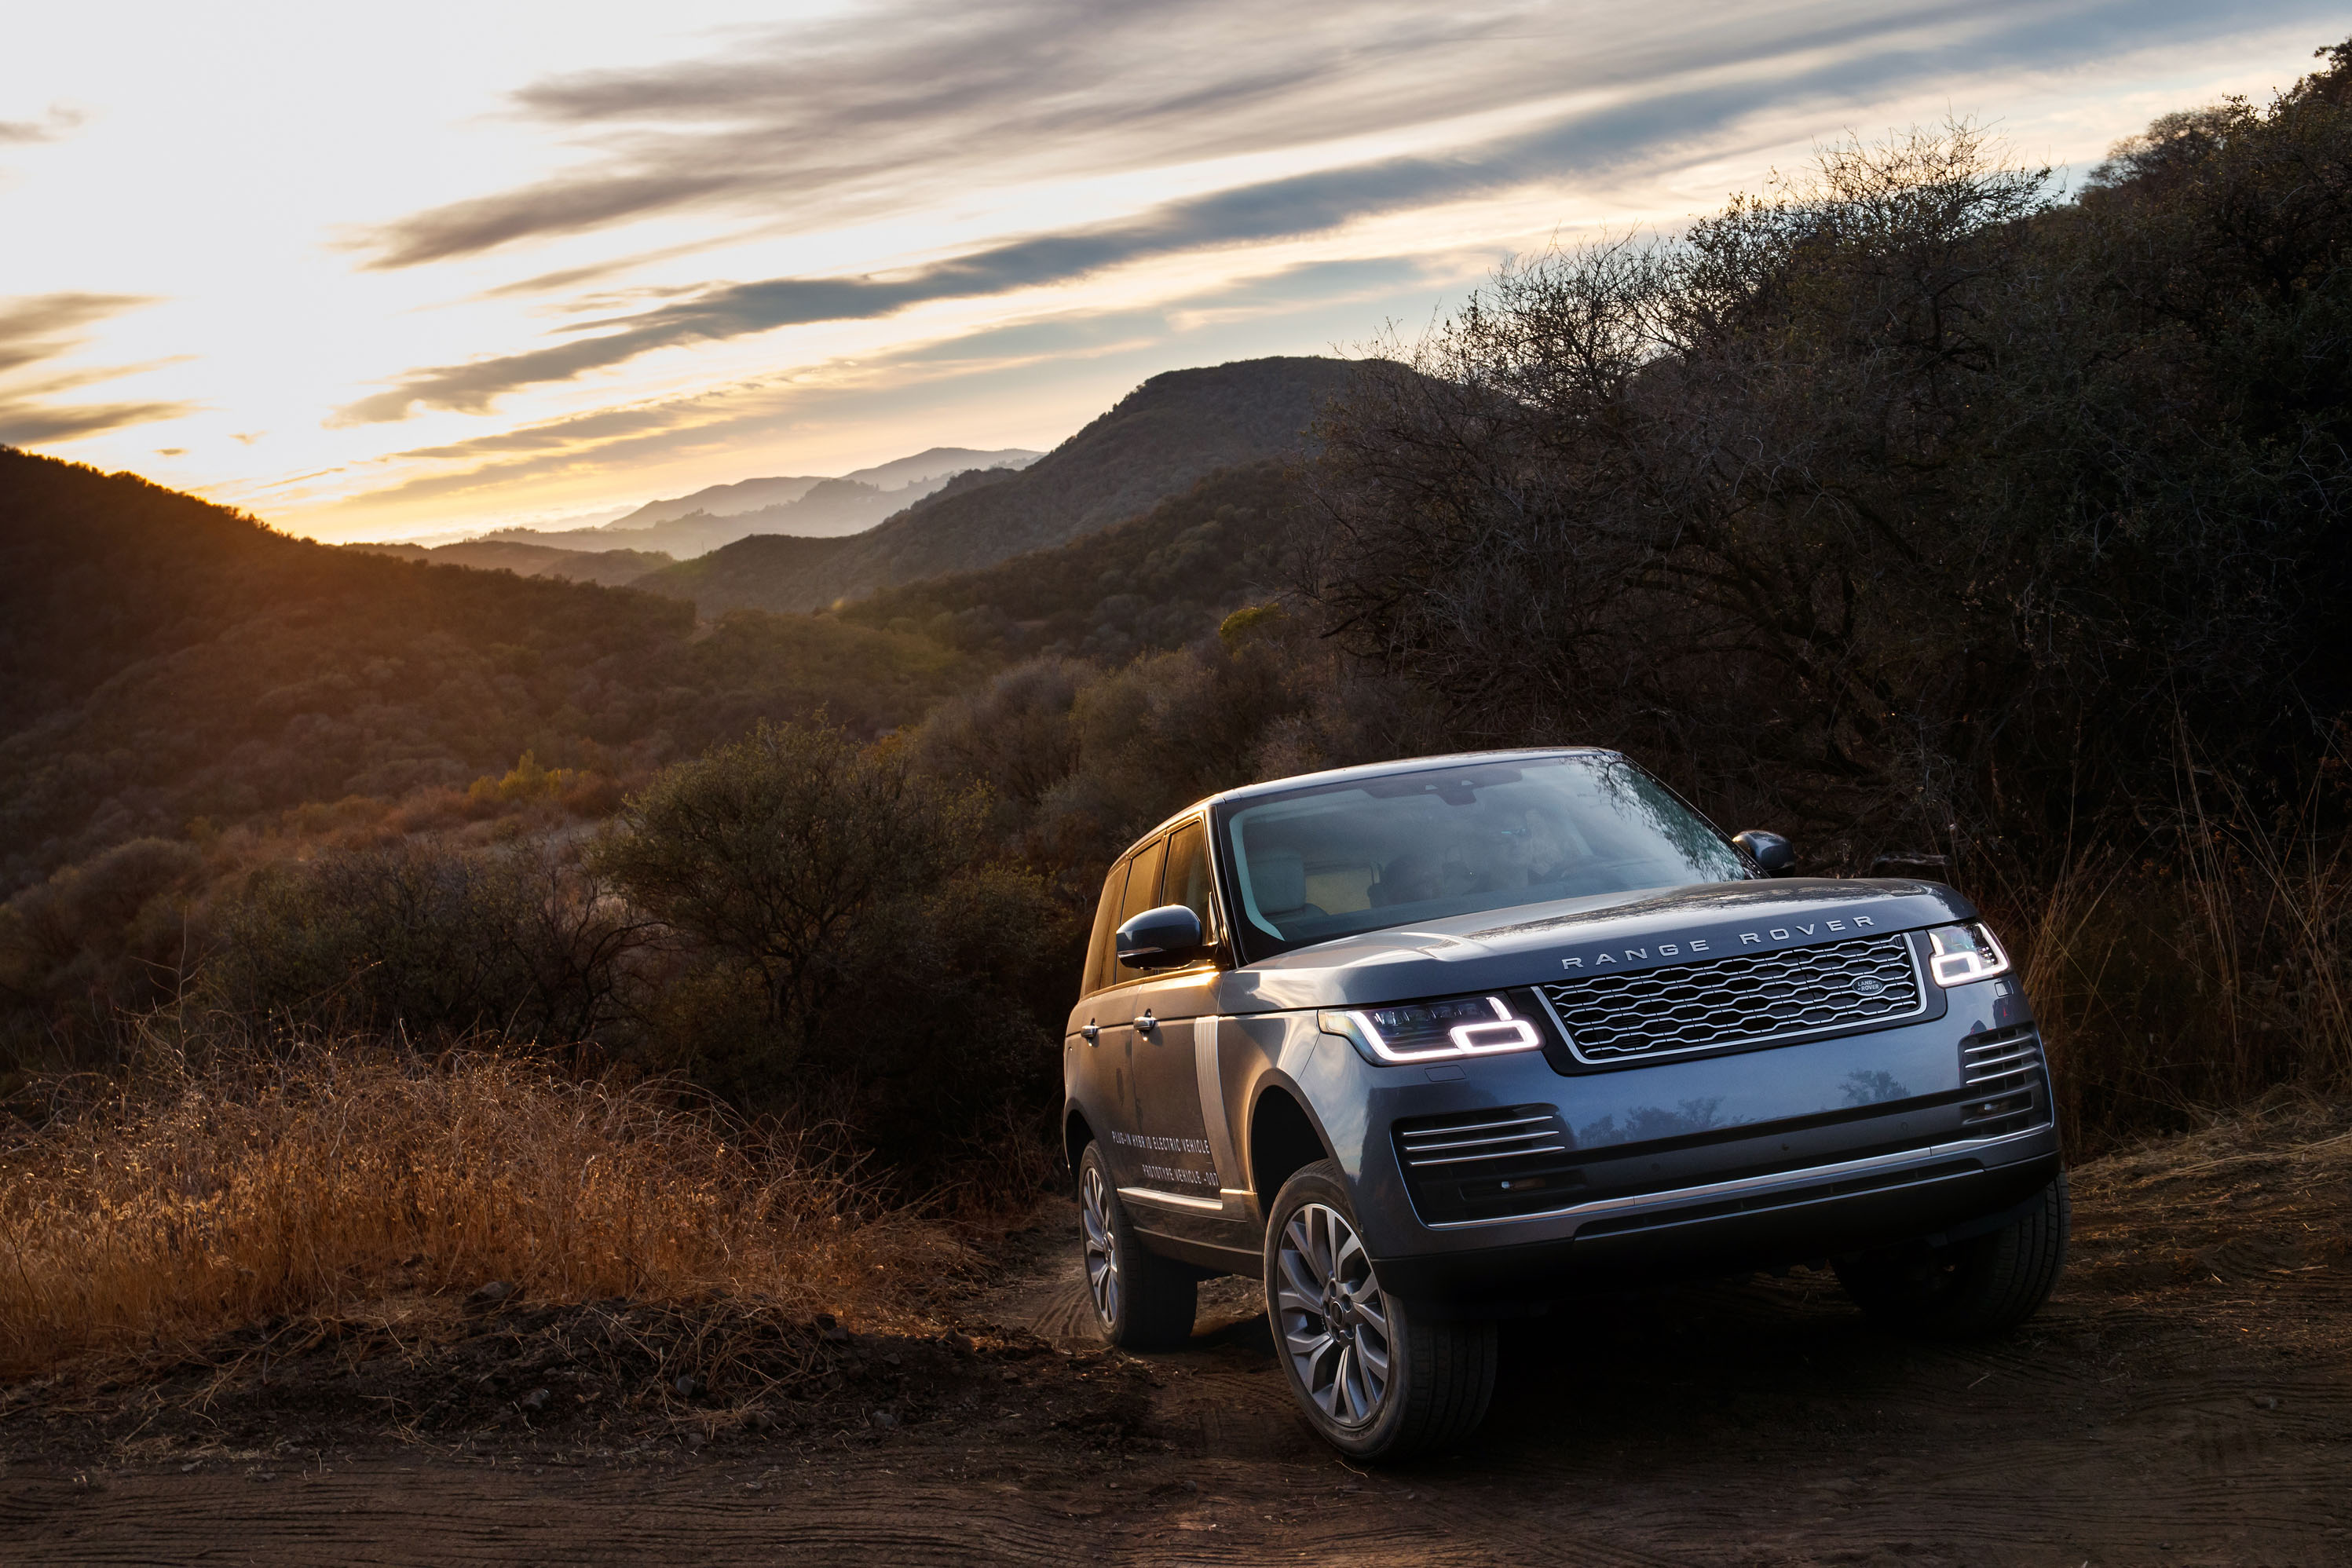 Used Land Rovers For Sale >> 2019 Land Rover Range Rover Review, Ratings, Specs, Prices, and Photos - The Car Connection